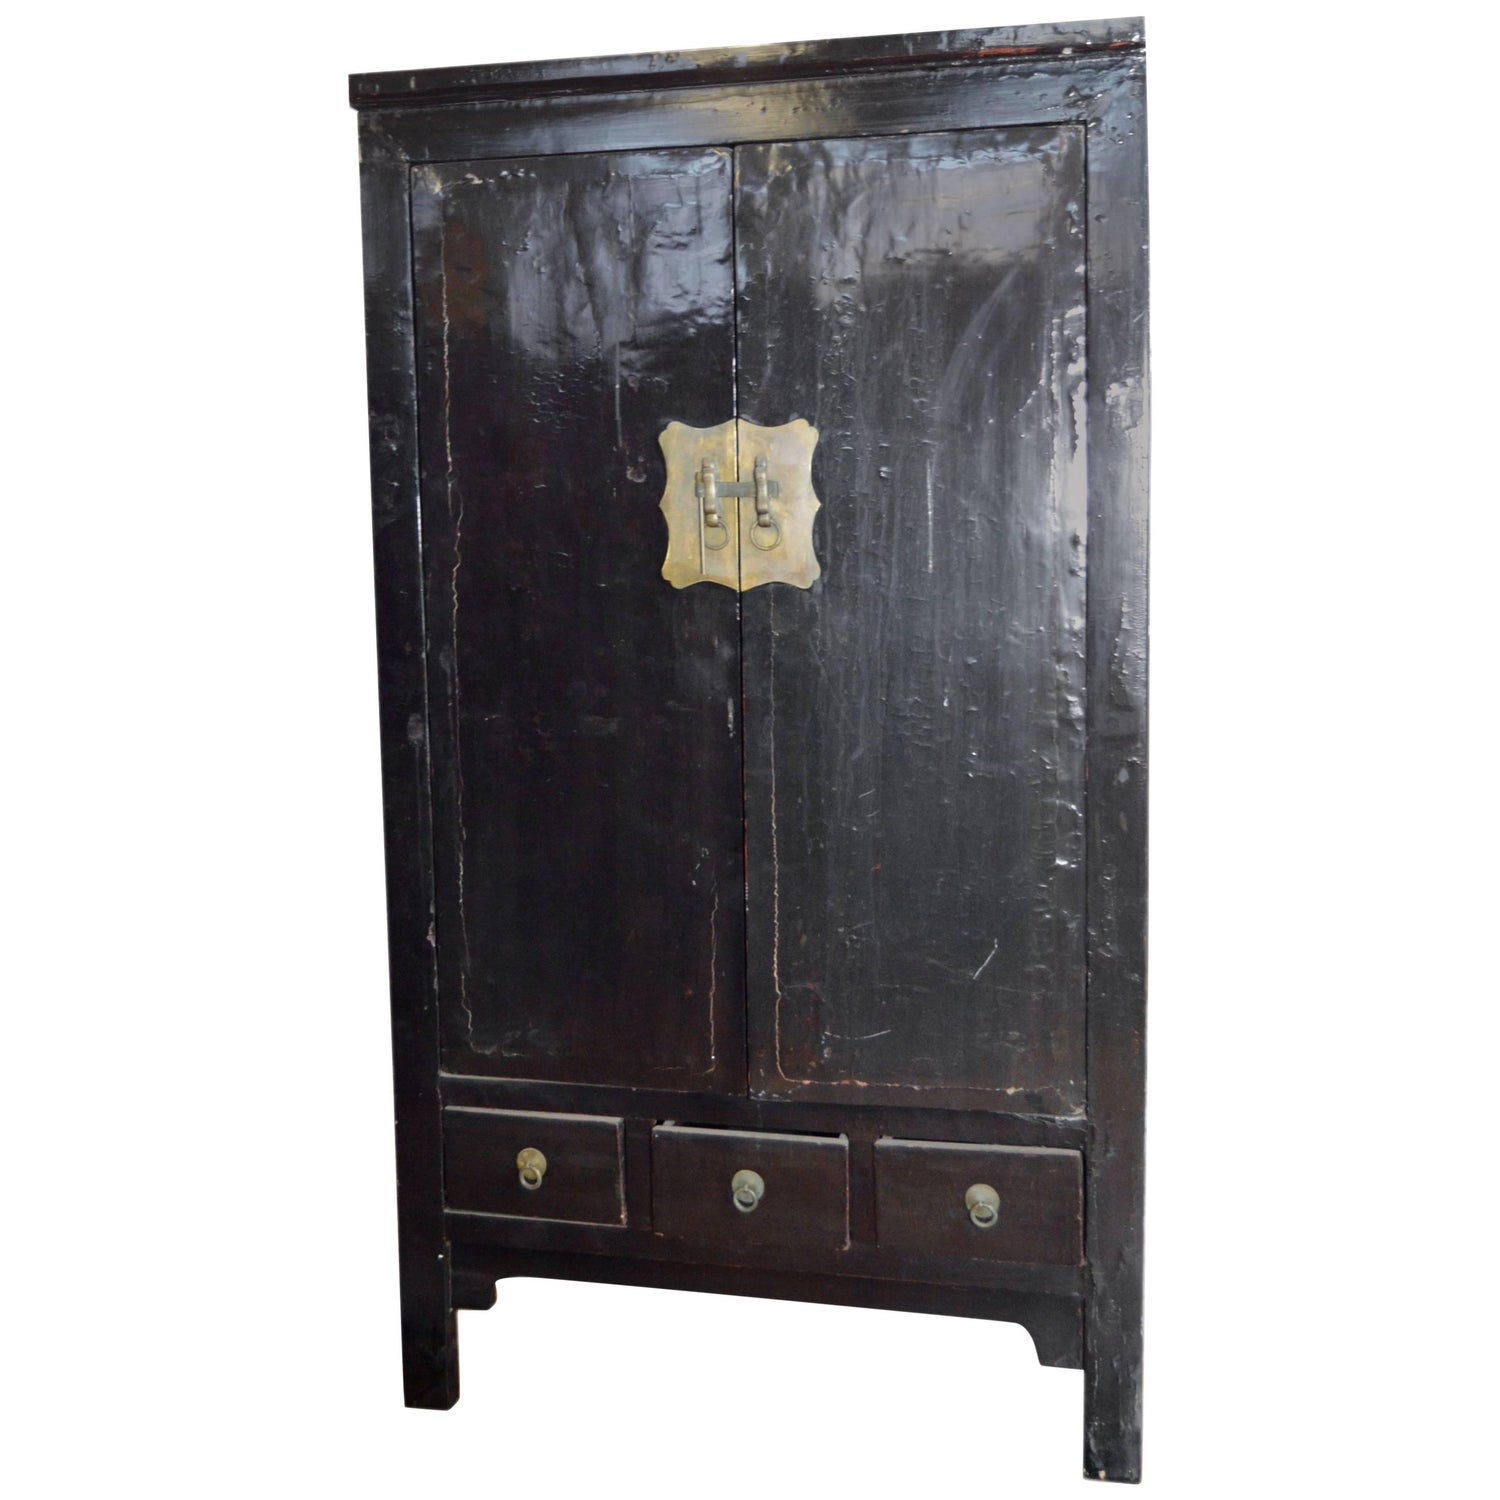 Early 19th Century Chinese Black Lacquered Wardrobe With Drawers And Shelves